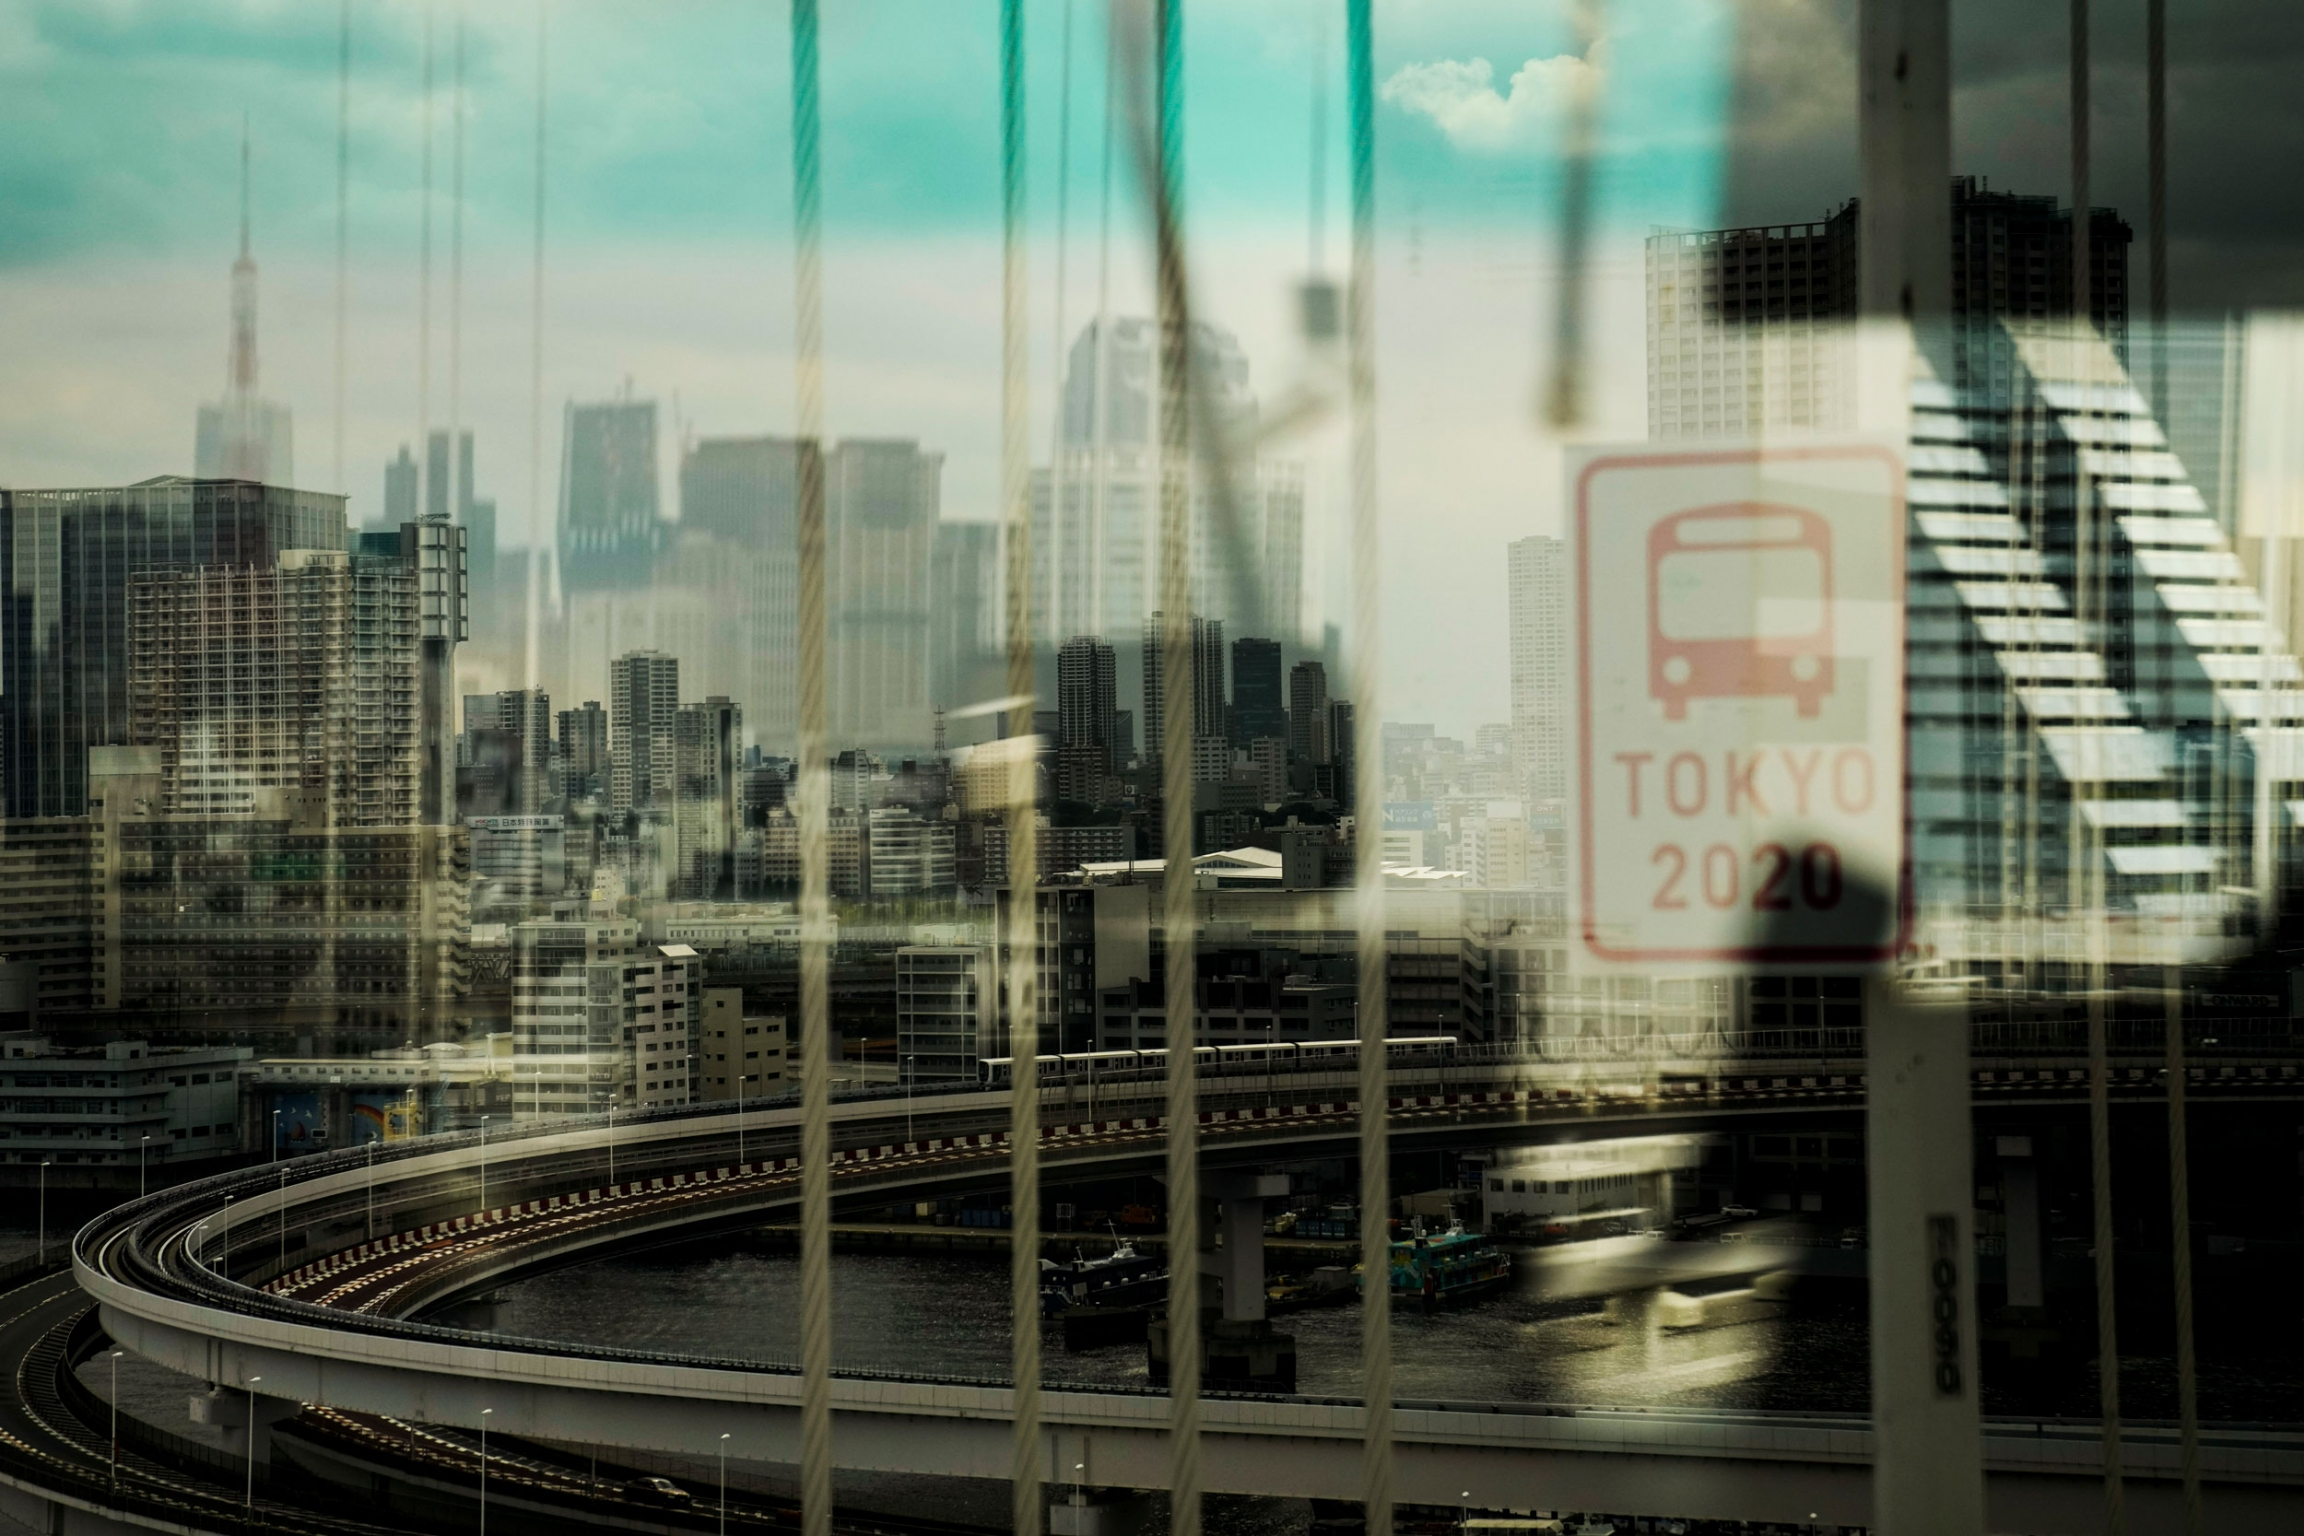 A major roadway and elevated train track along with the Tokyo skyline are shown blurred slightly via a bus window.